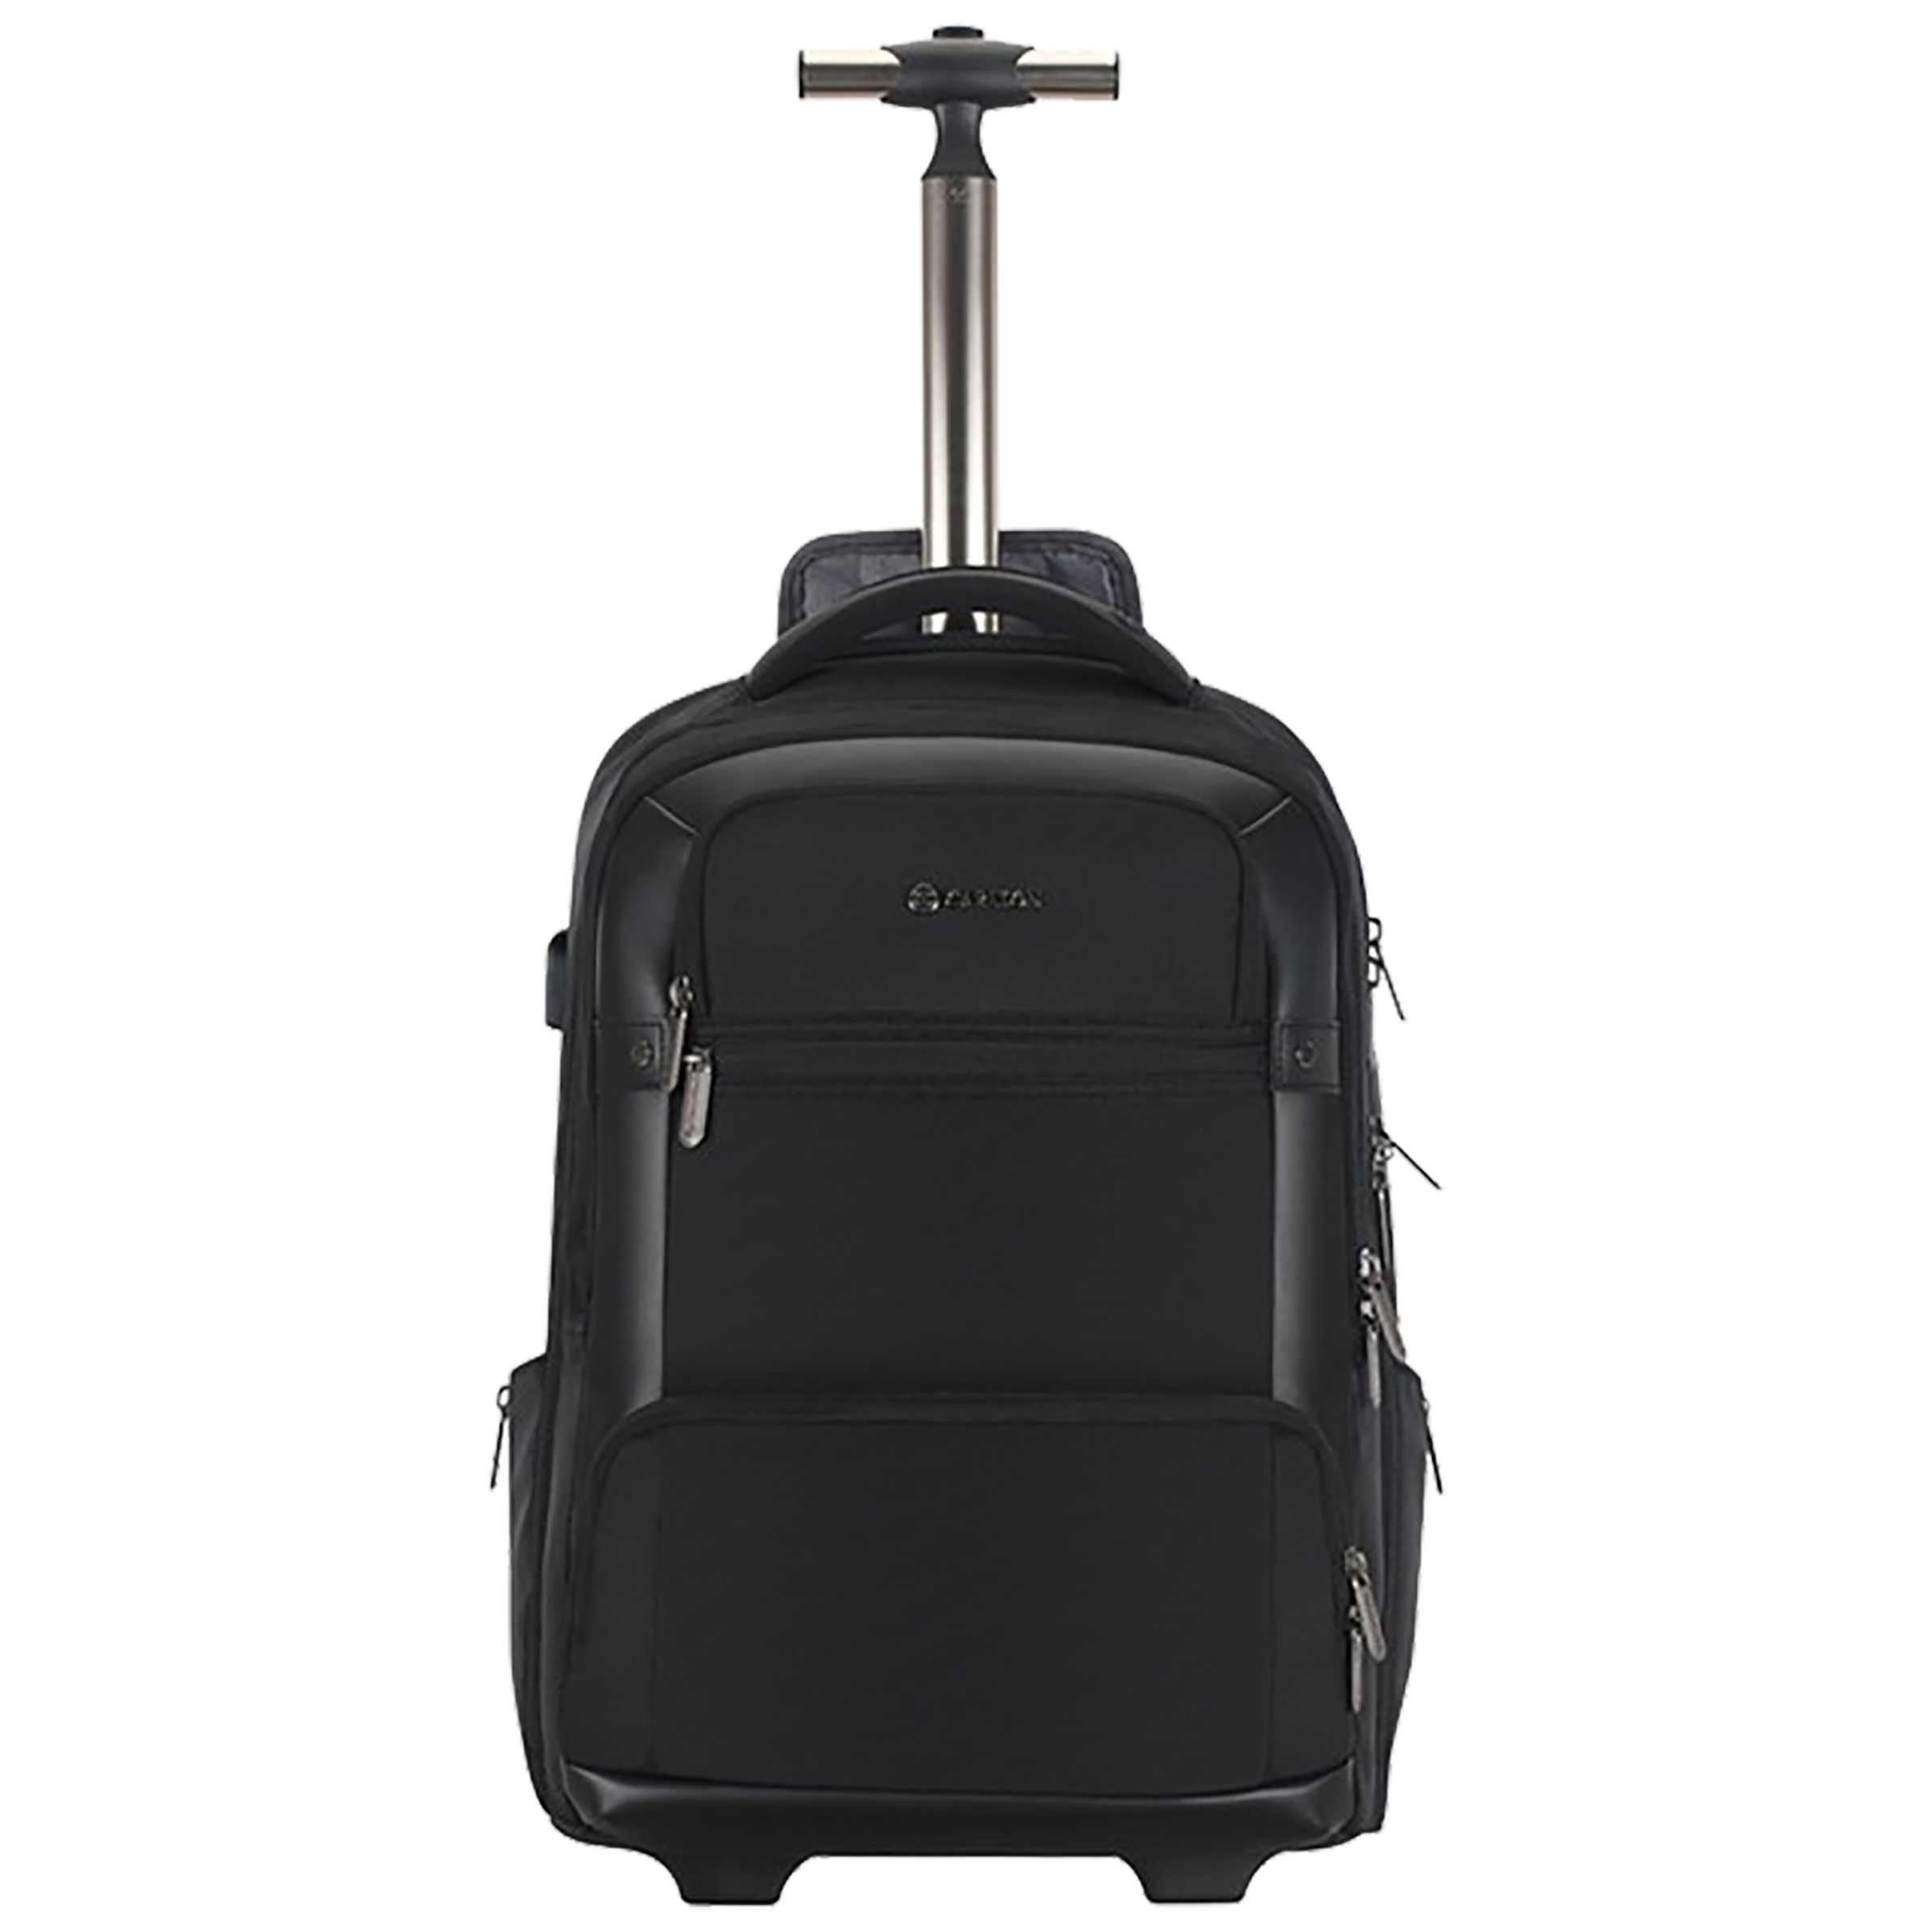 Carlton Hampshire 05 29 Litres 1684 Faux Nylon Trolley Backpack for 16 Inch Laptop (Single Stem Strolley, LPBPHAM5BLK, Black)_1